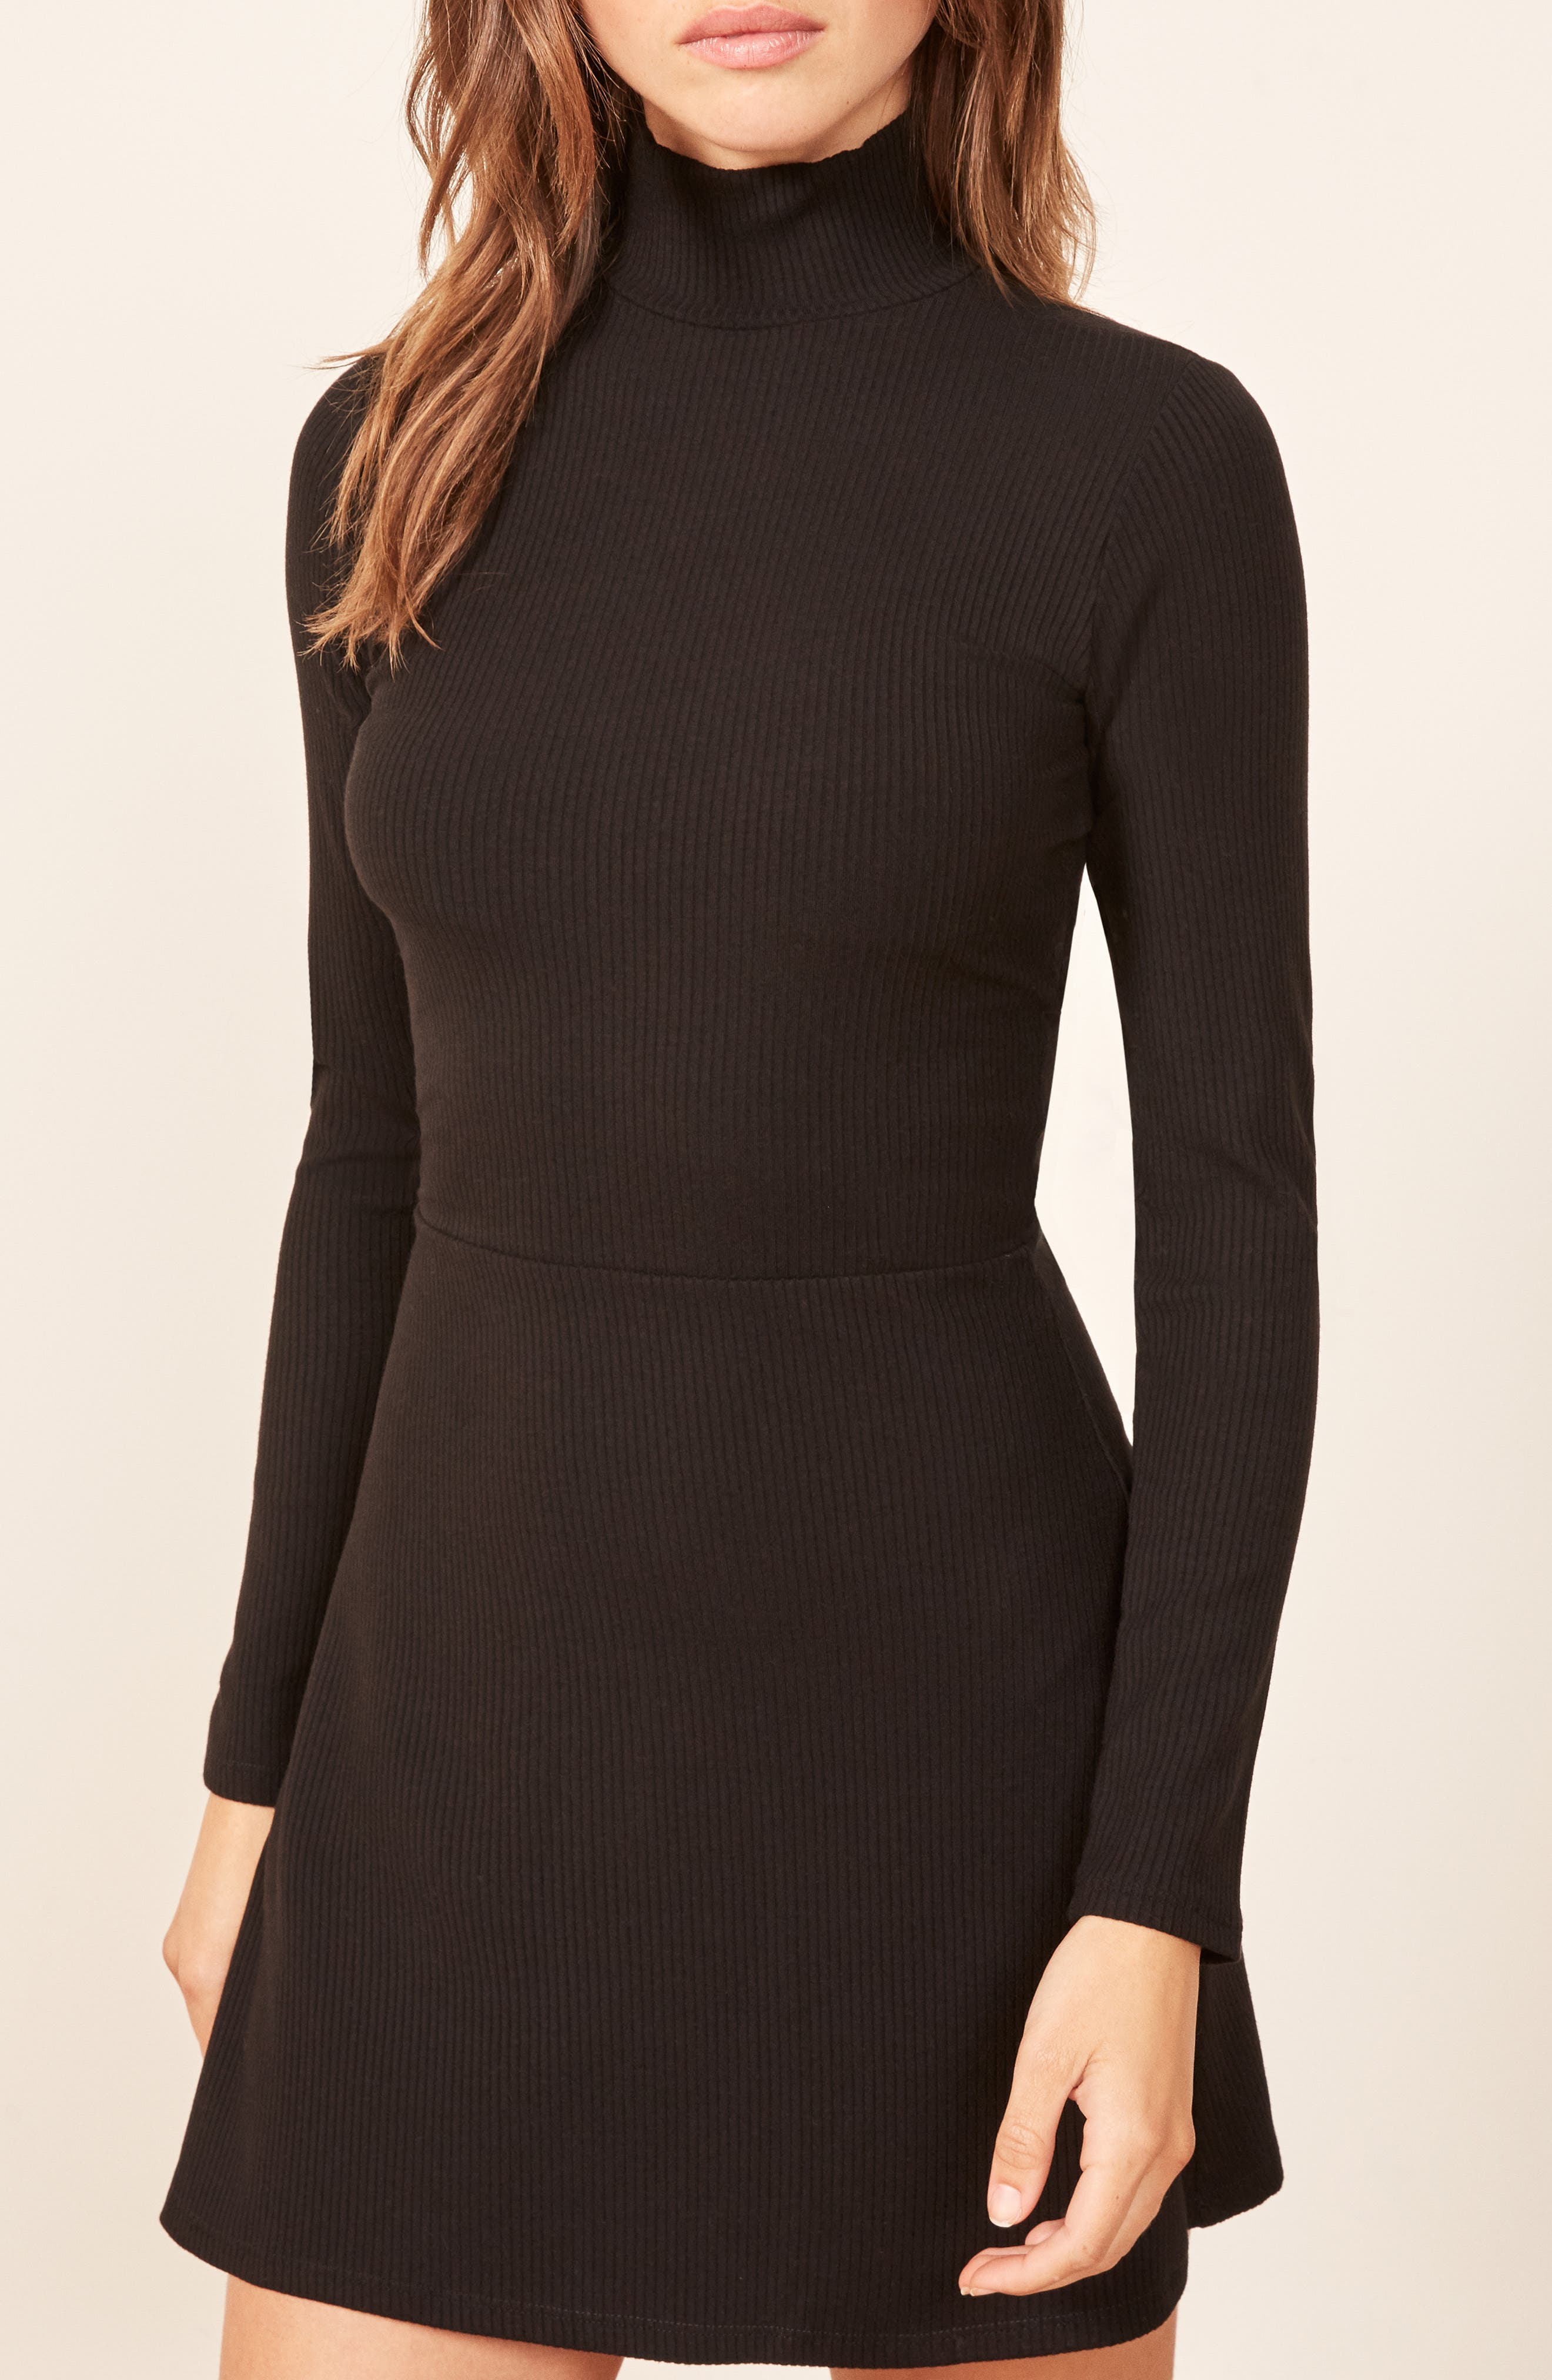 REFORMATION, Maya Turtleneck Body-Con Dress, Alternate thumbnail 5, color, BLACK